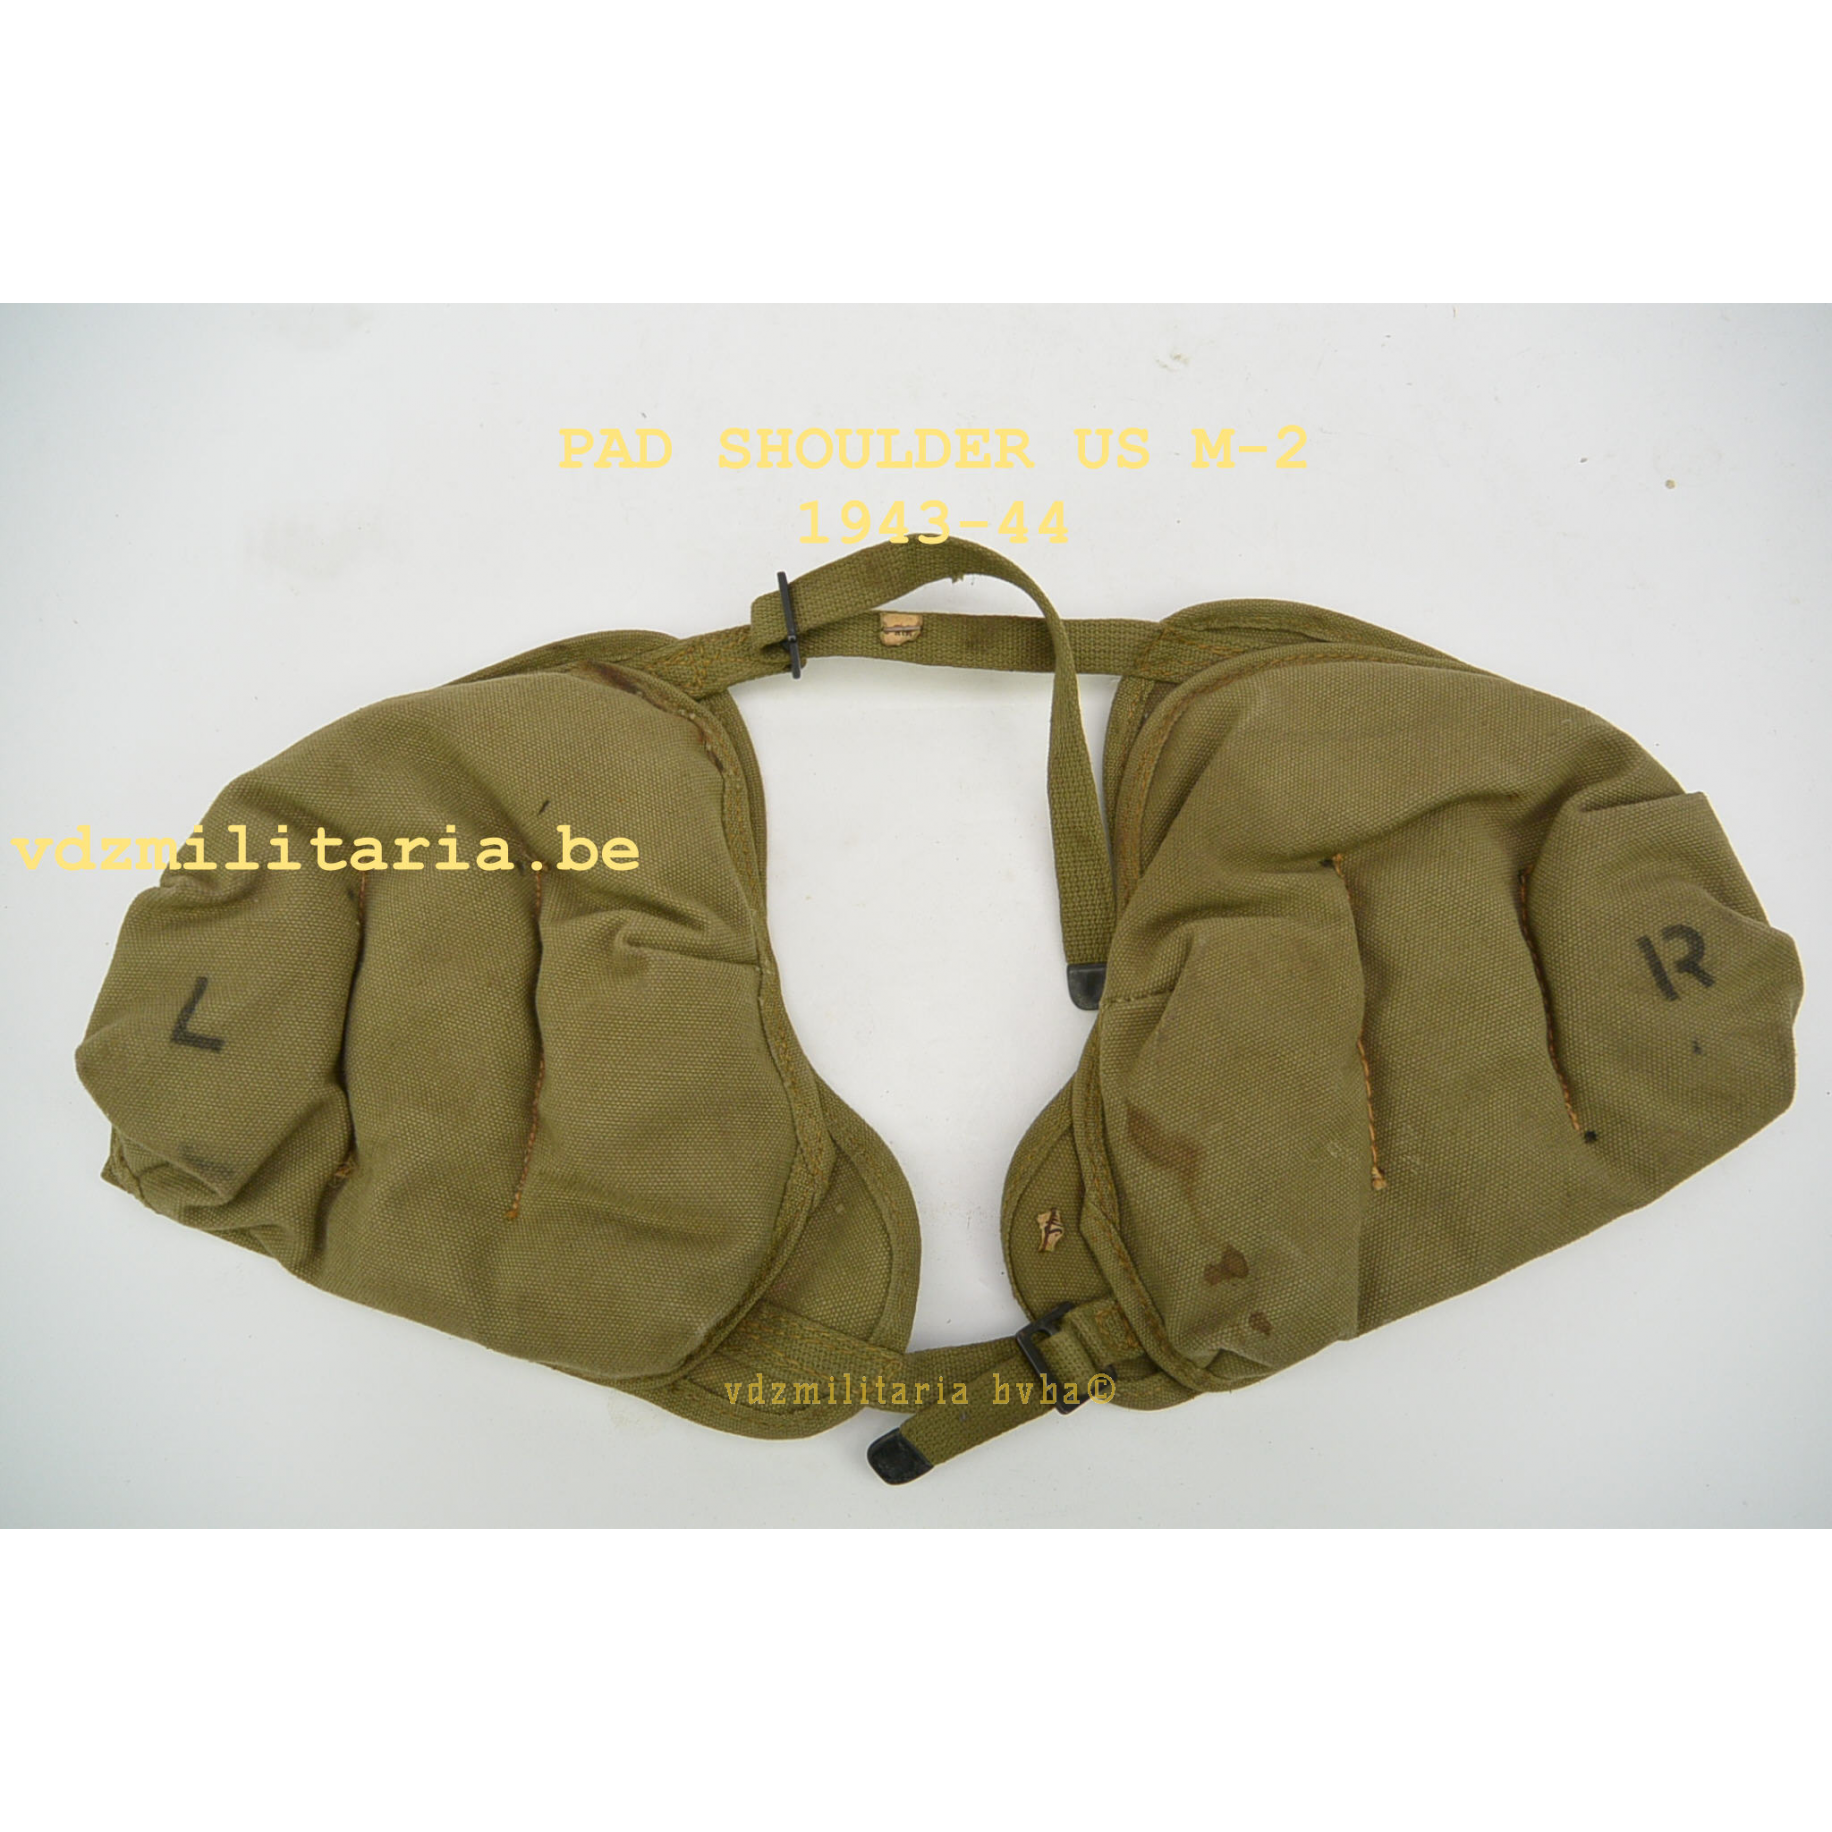 PAD SHOLDER US M-2 TAN COLOR 1943/44,WWII